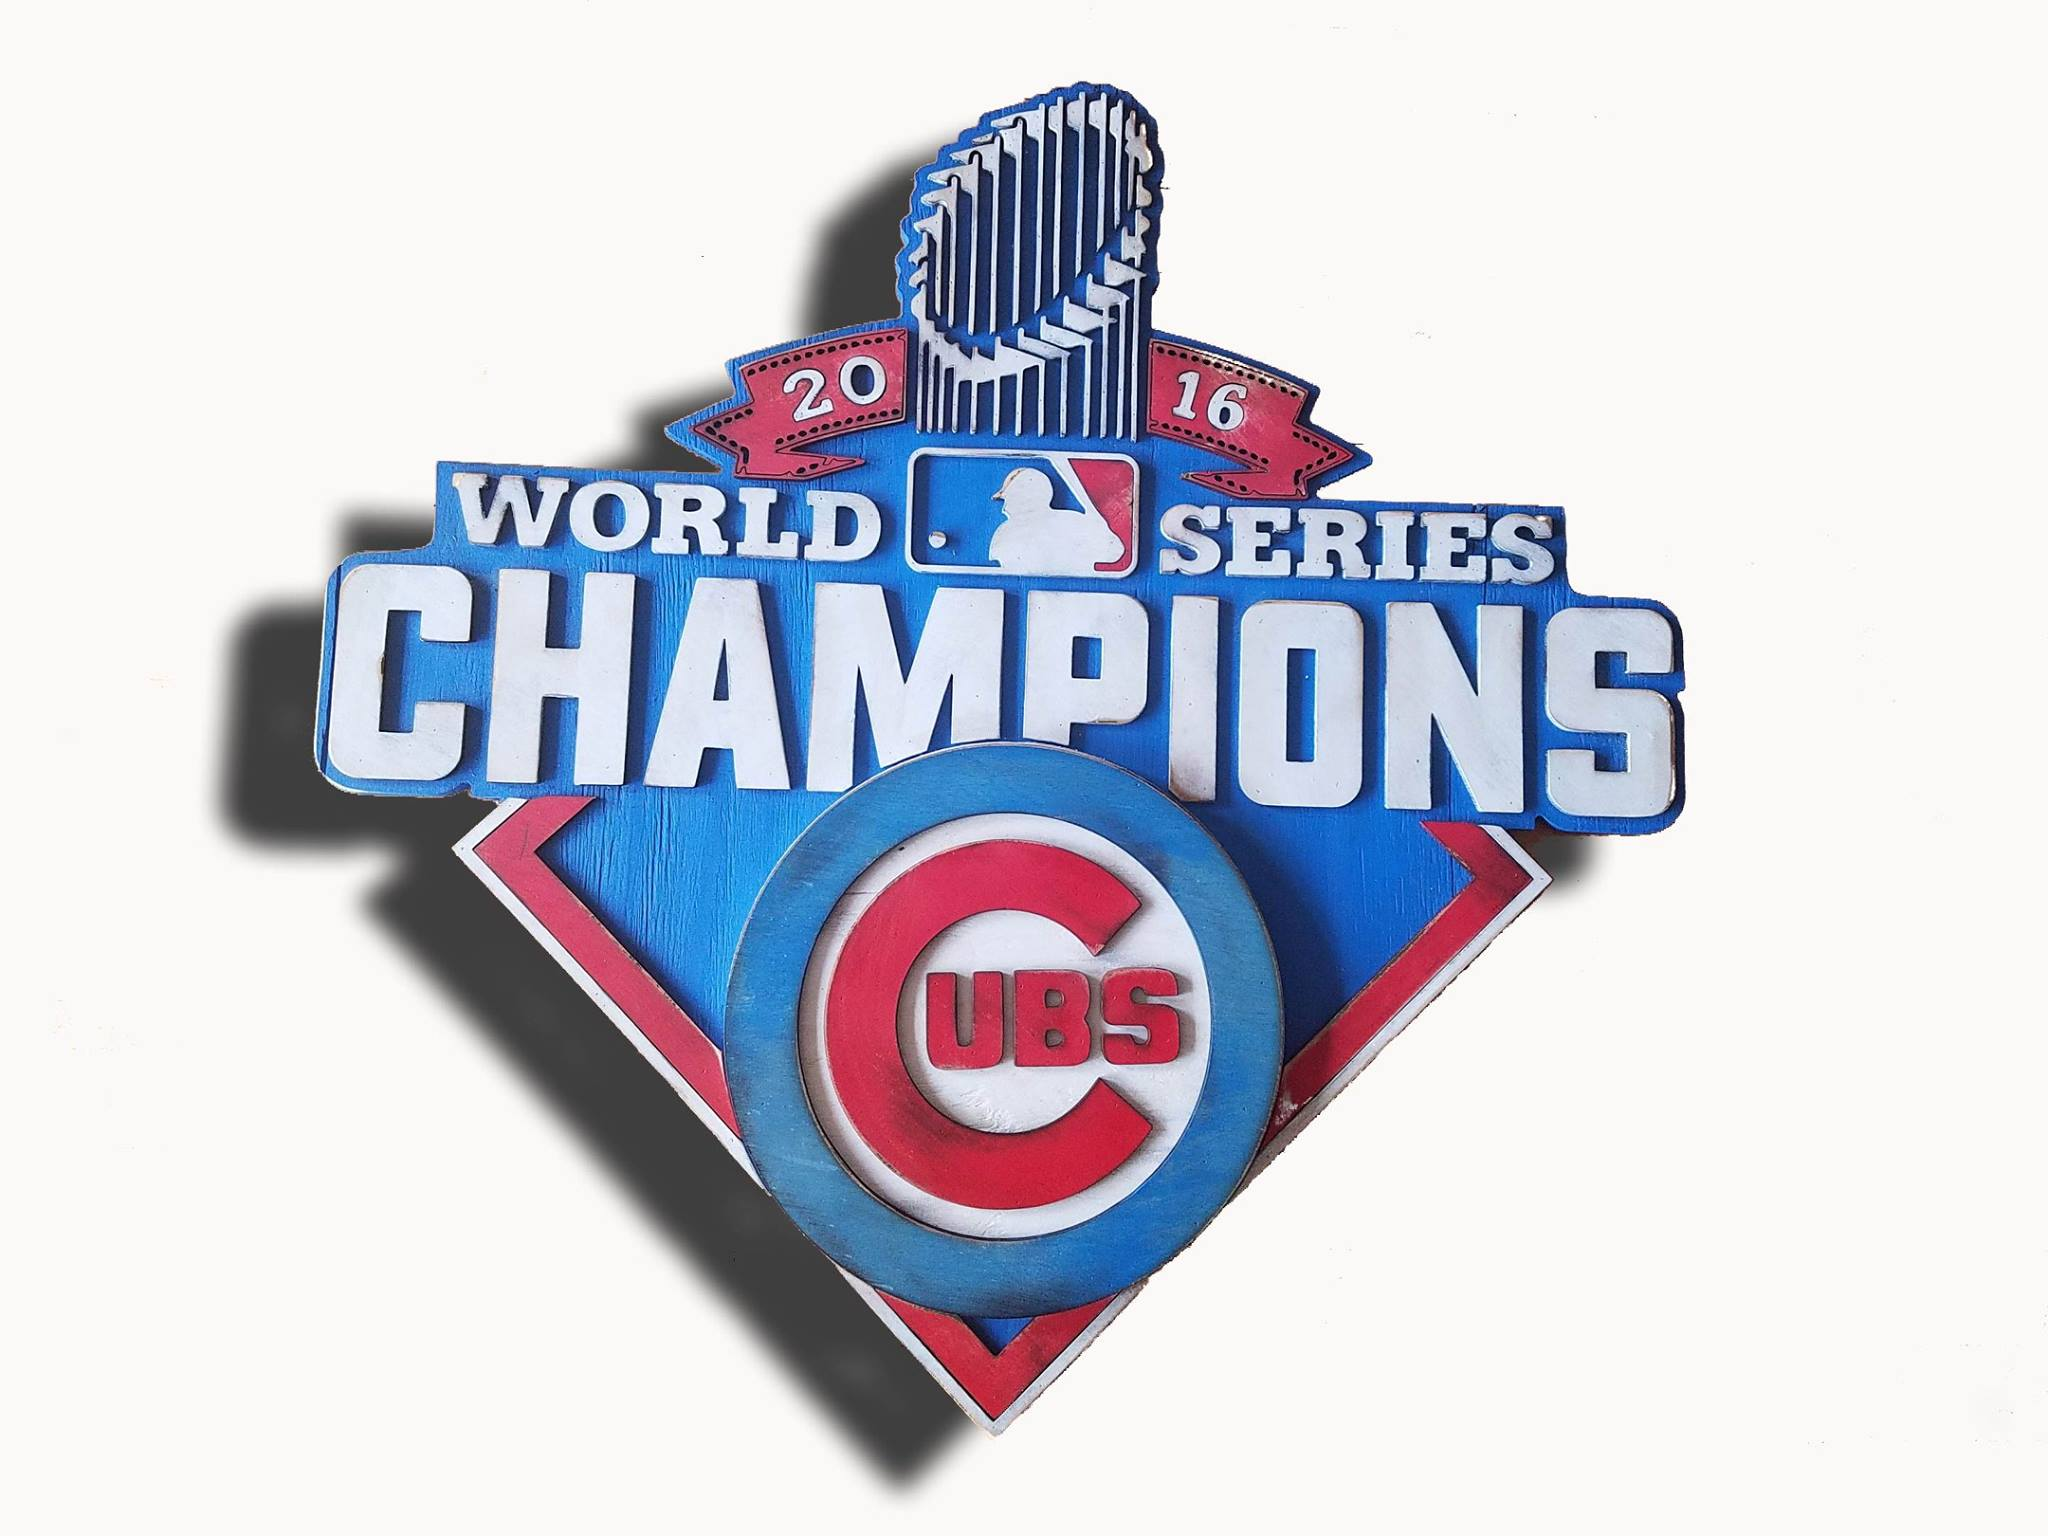 Chicago Cubs World Series Champions Wooden Sign